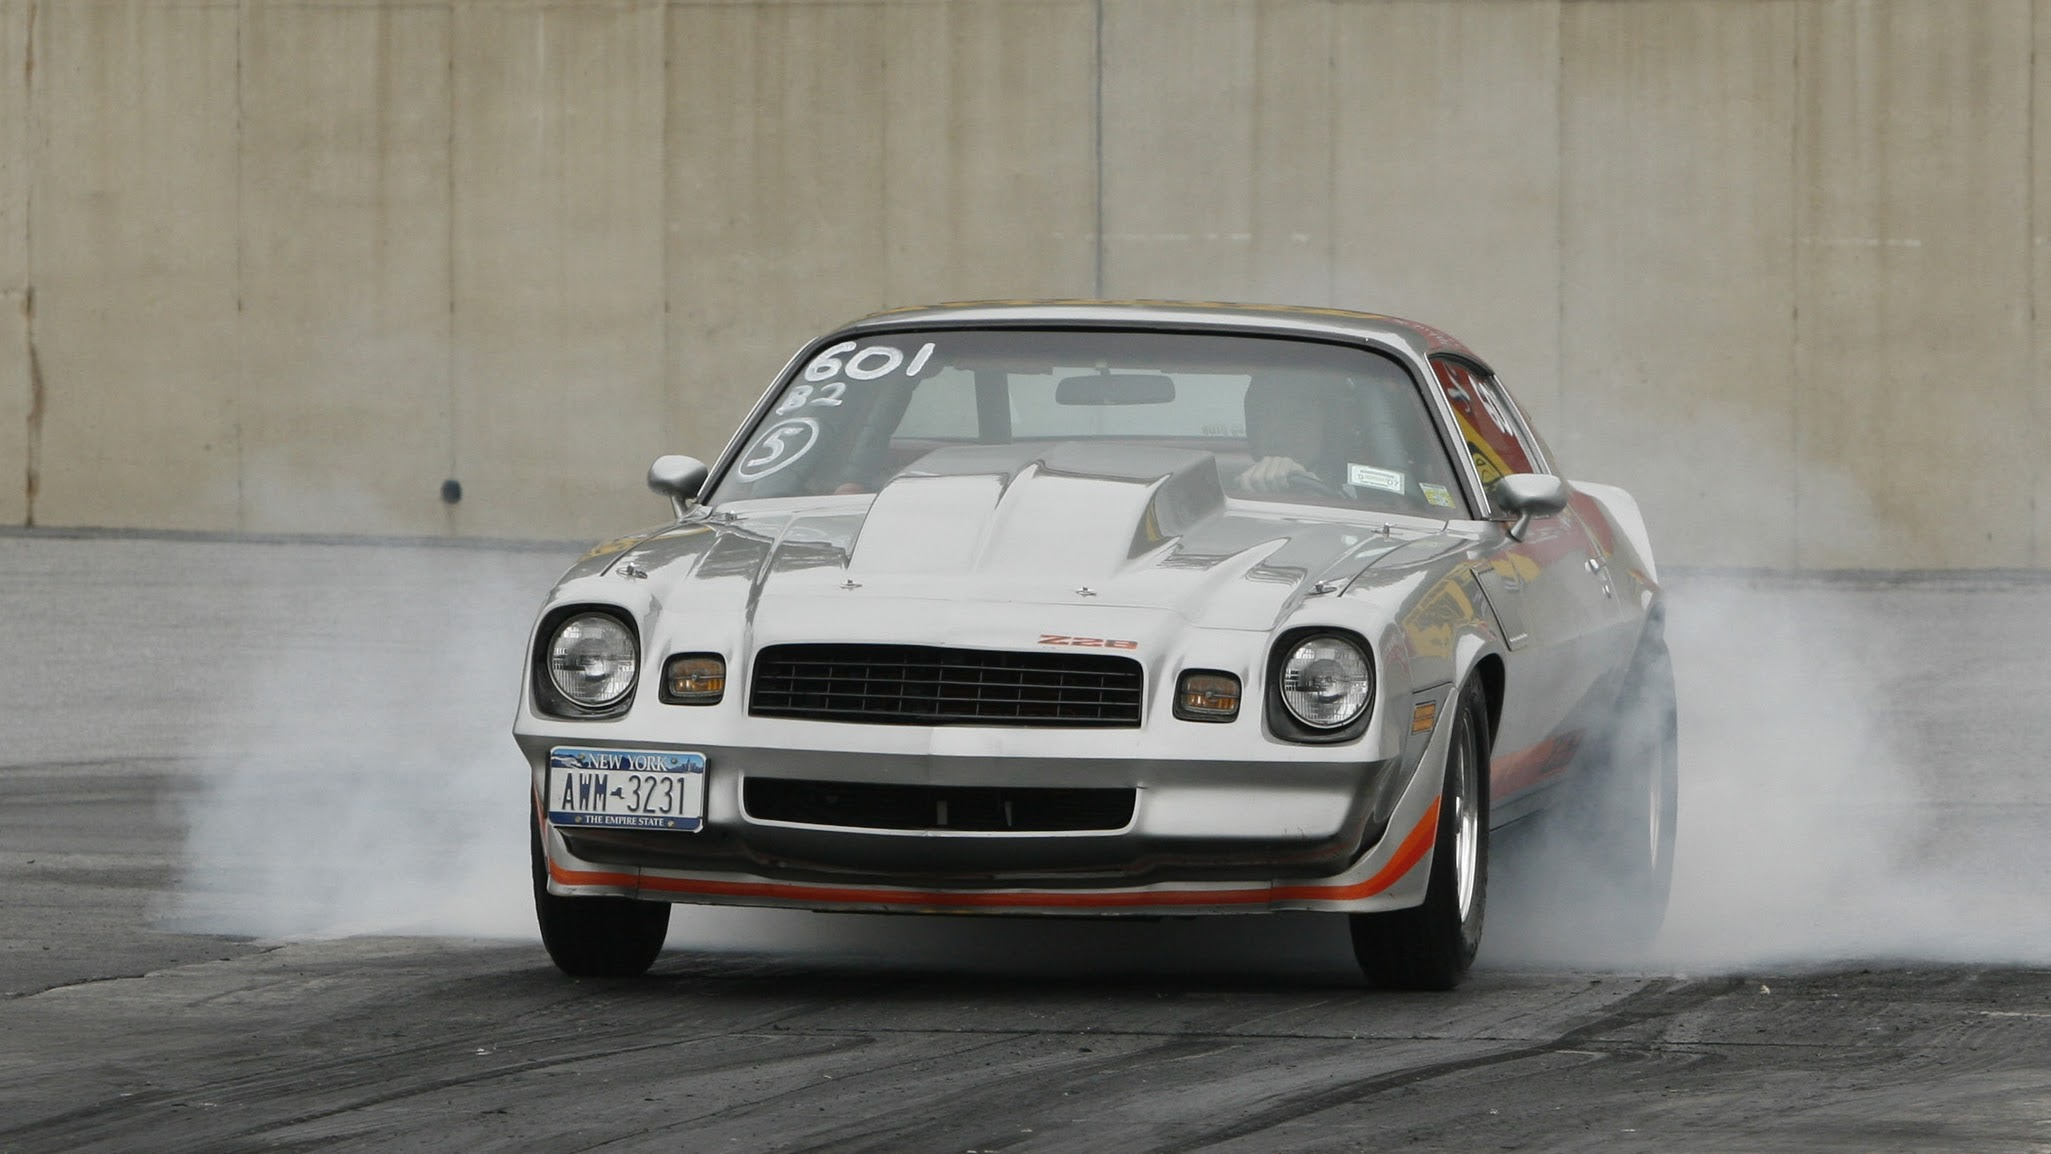 Andy79Z28 22